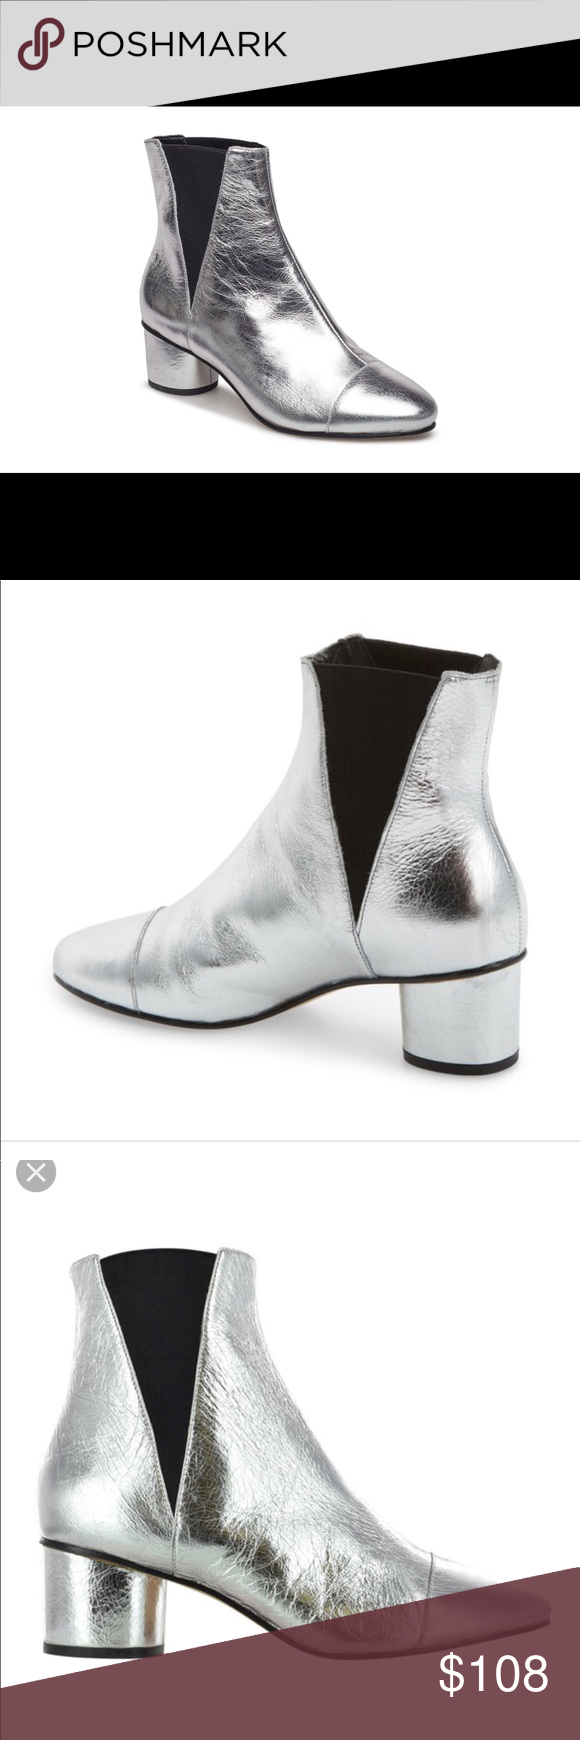 247bb92d719 Evecca minkoff izette bootie Silver Worn tiwce Like new No box ...